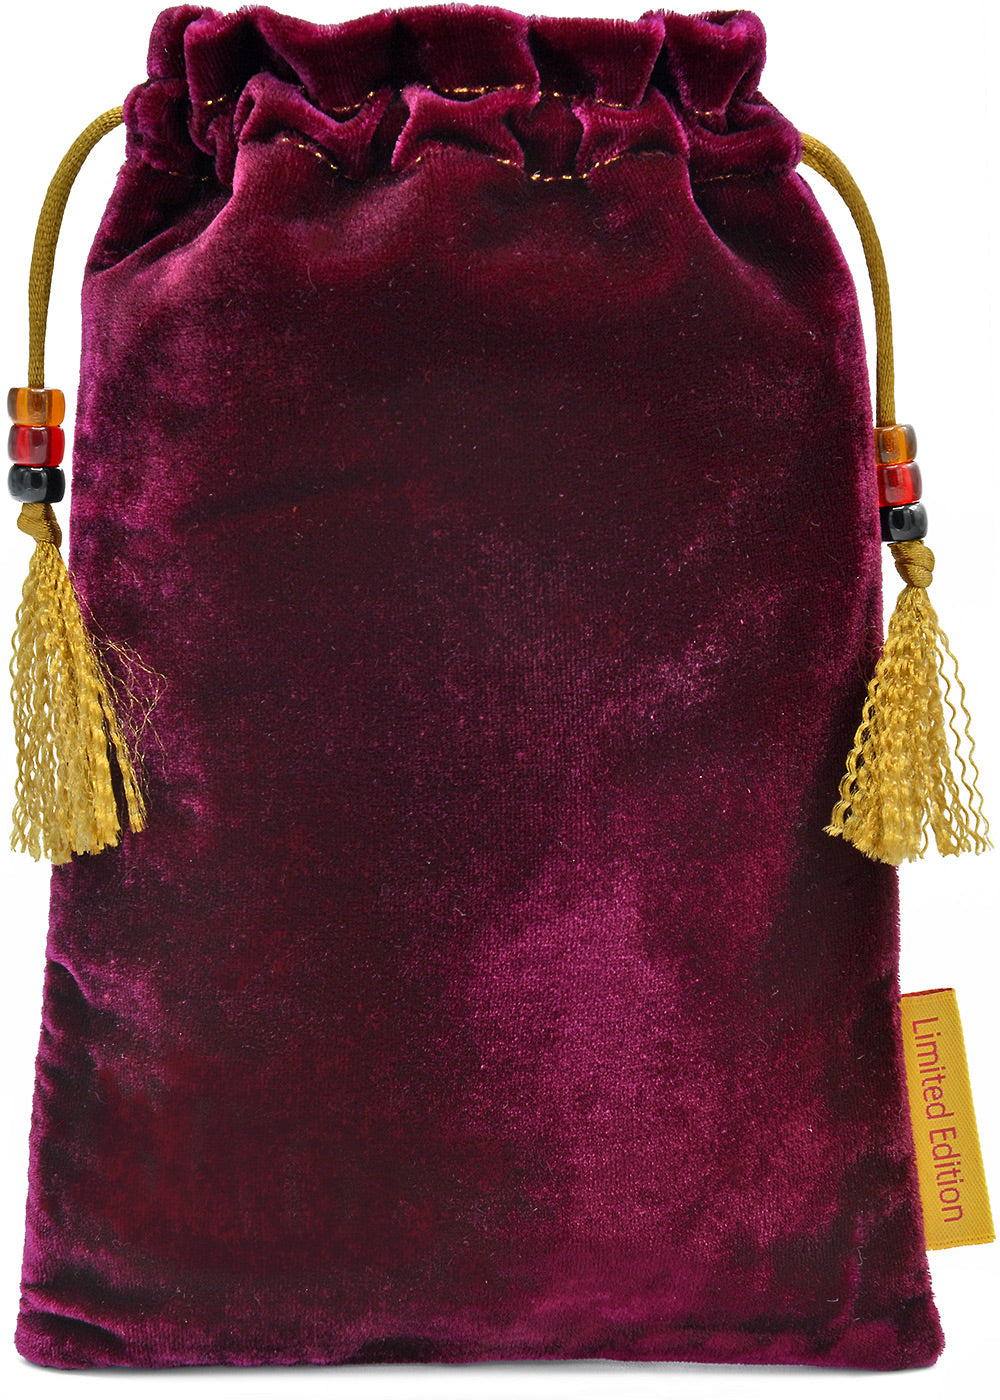 The Tarot Reader — limited edition tarot bag with burgundy silk velvet